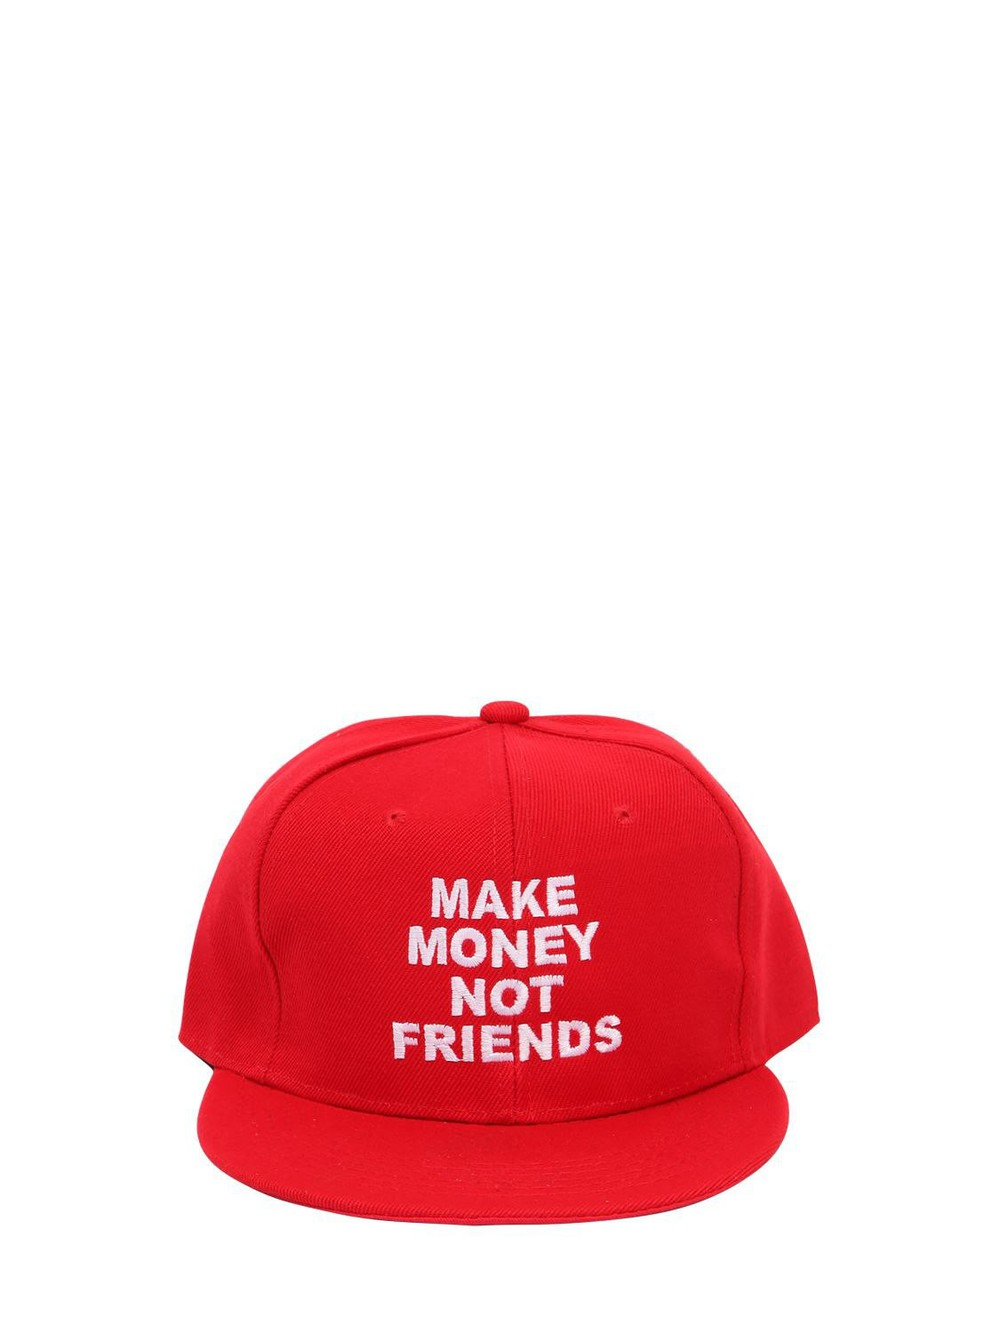 MAKE MONEY NOT FRIENDS Logo Embroidered Baseball Hat in red